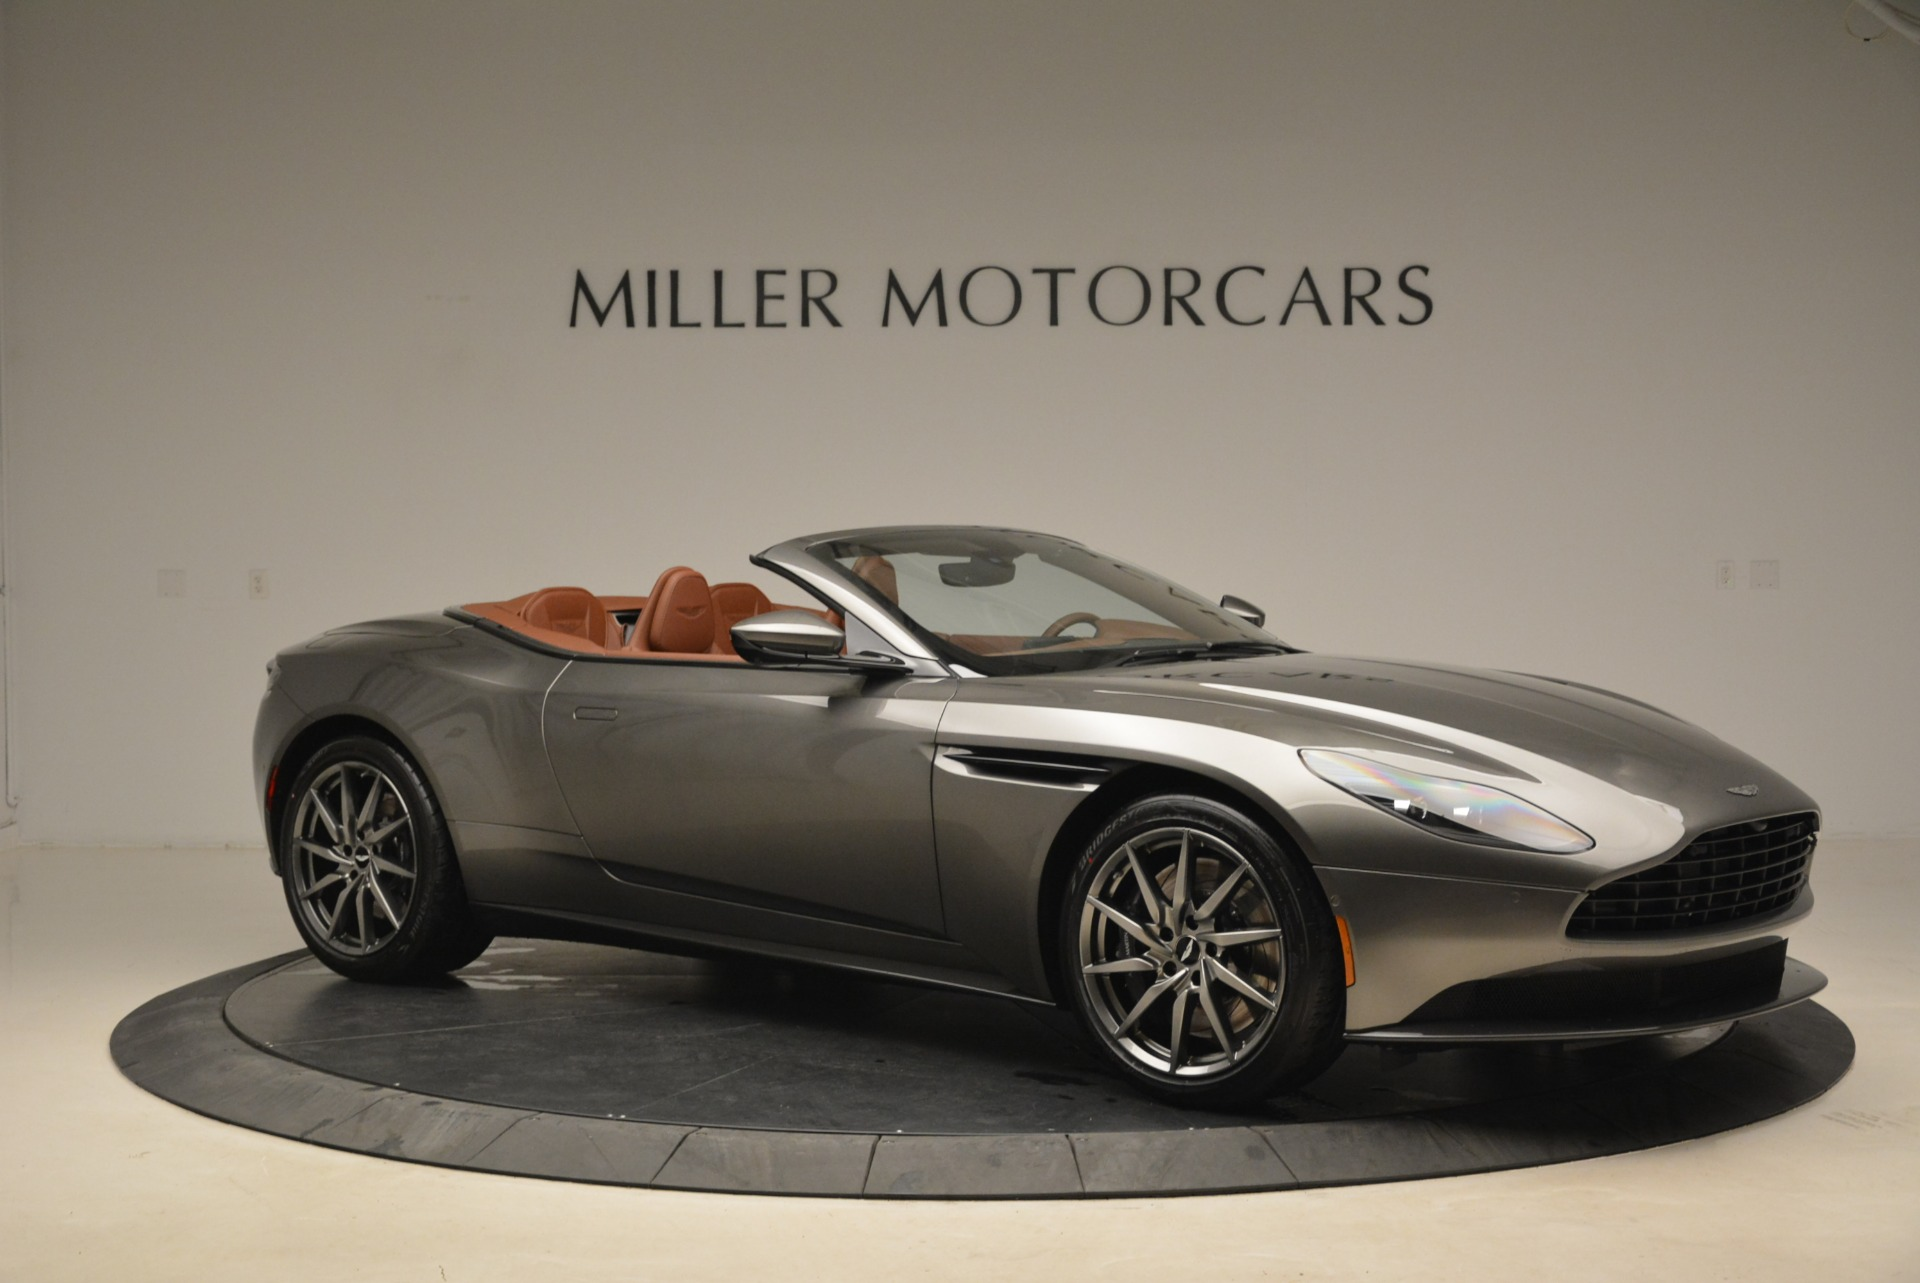 New 2019 Aston Martin DB11 Volante  For Sale In Greenwich, CT. Alfa Romeo of Greenwich, A1284 2209_p10